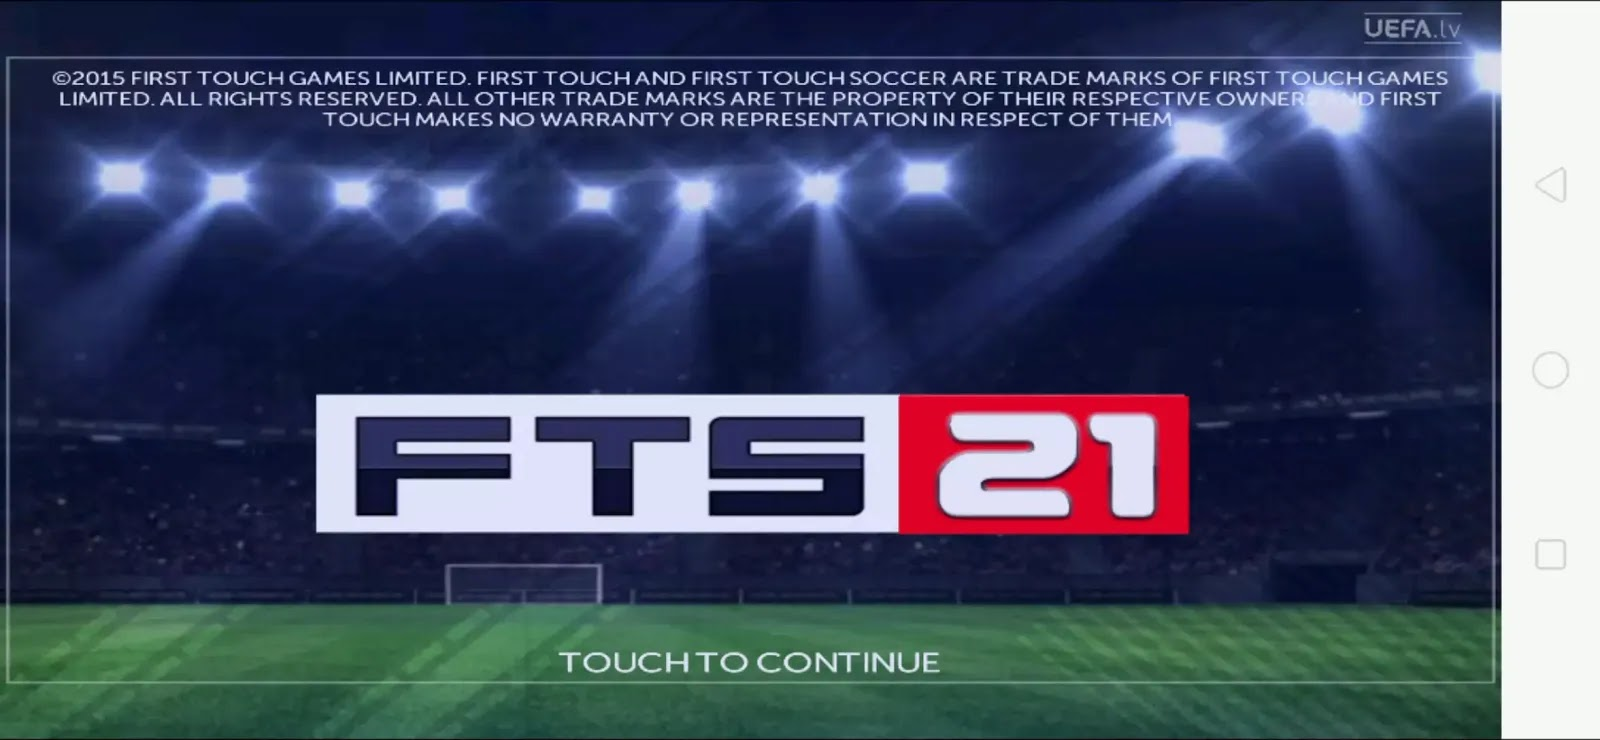 First Touch Soccer 2021 Fts 21 Apk Obb Data Download Latest Players